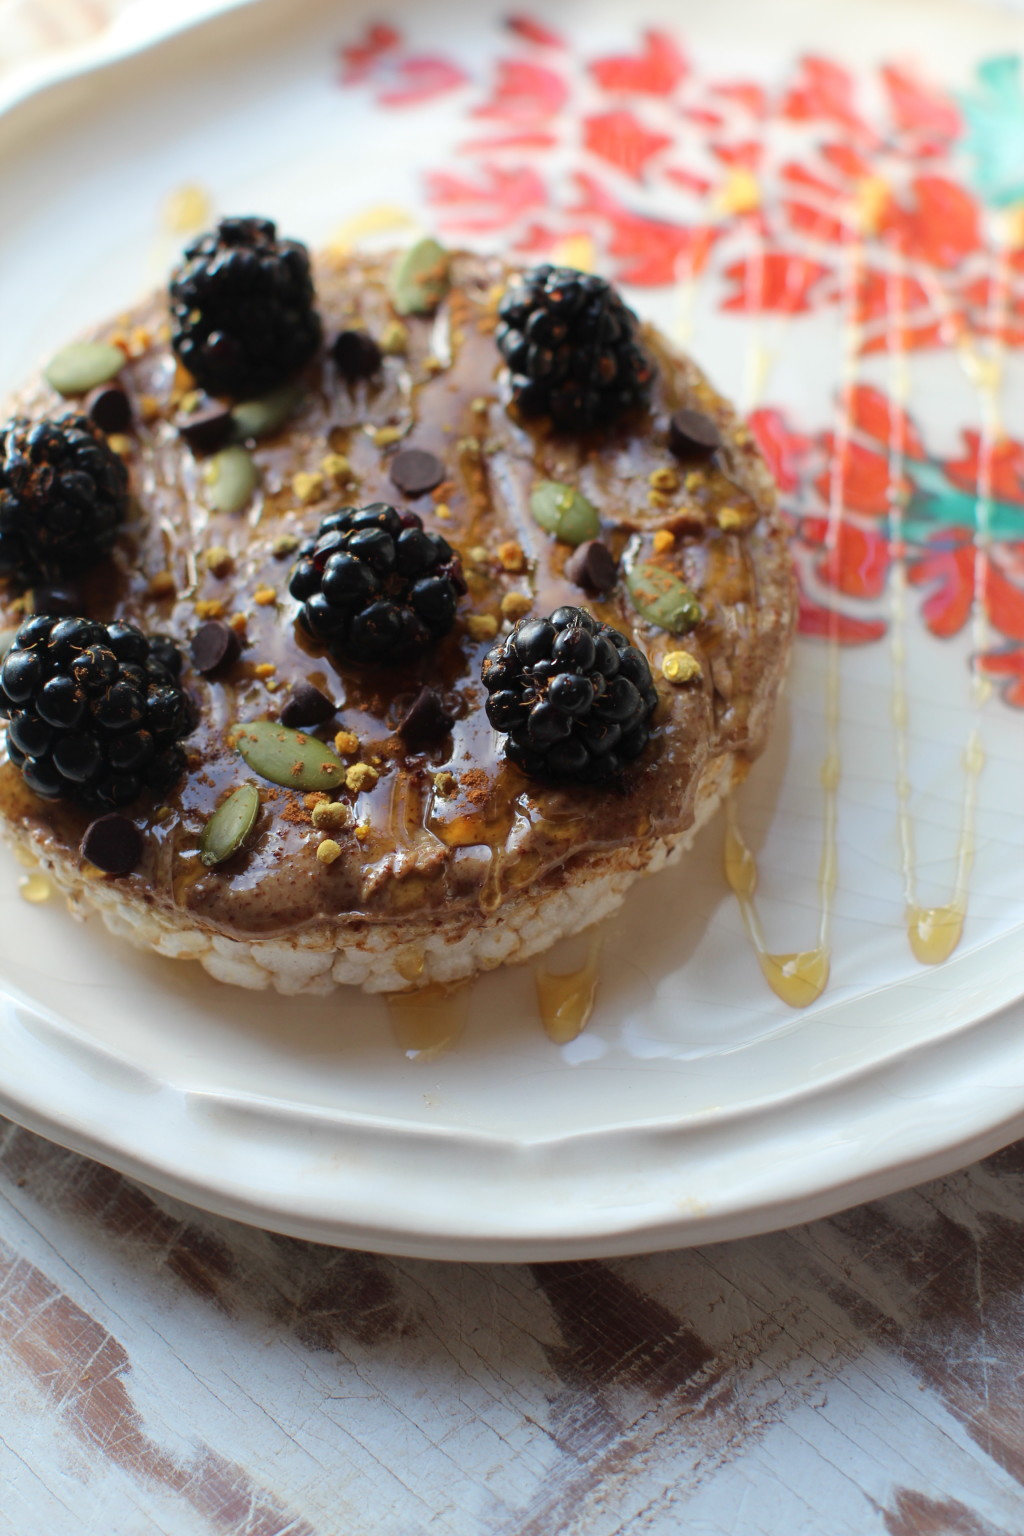 Rice cracker with almond butter, honey, bee pollen, cinnamon dust, pepitas, black berries and chocolate chips